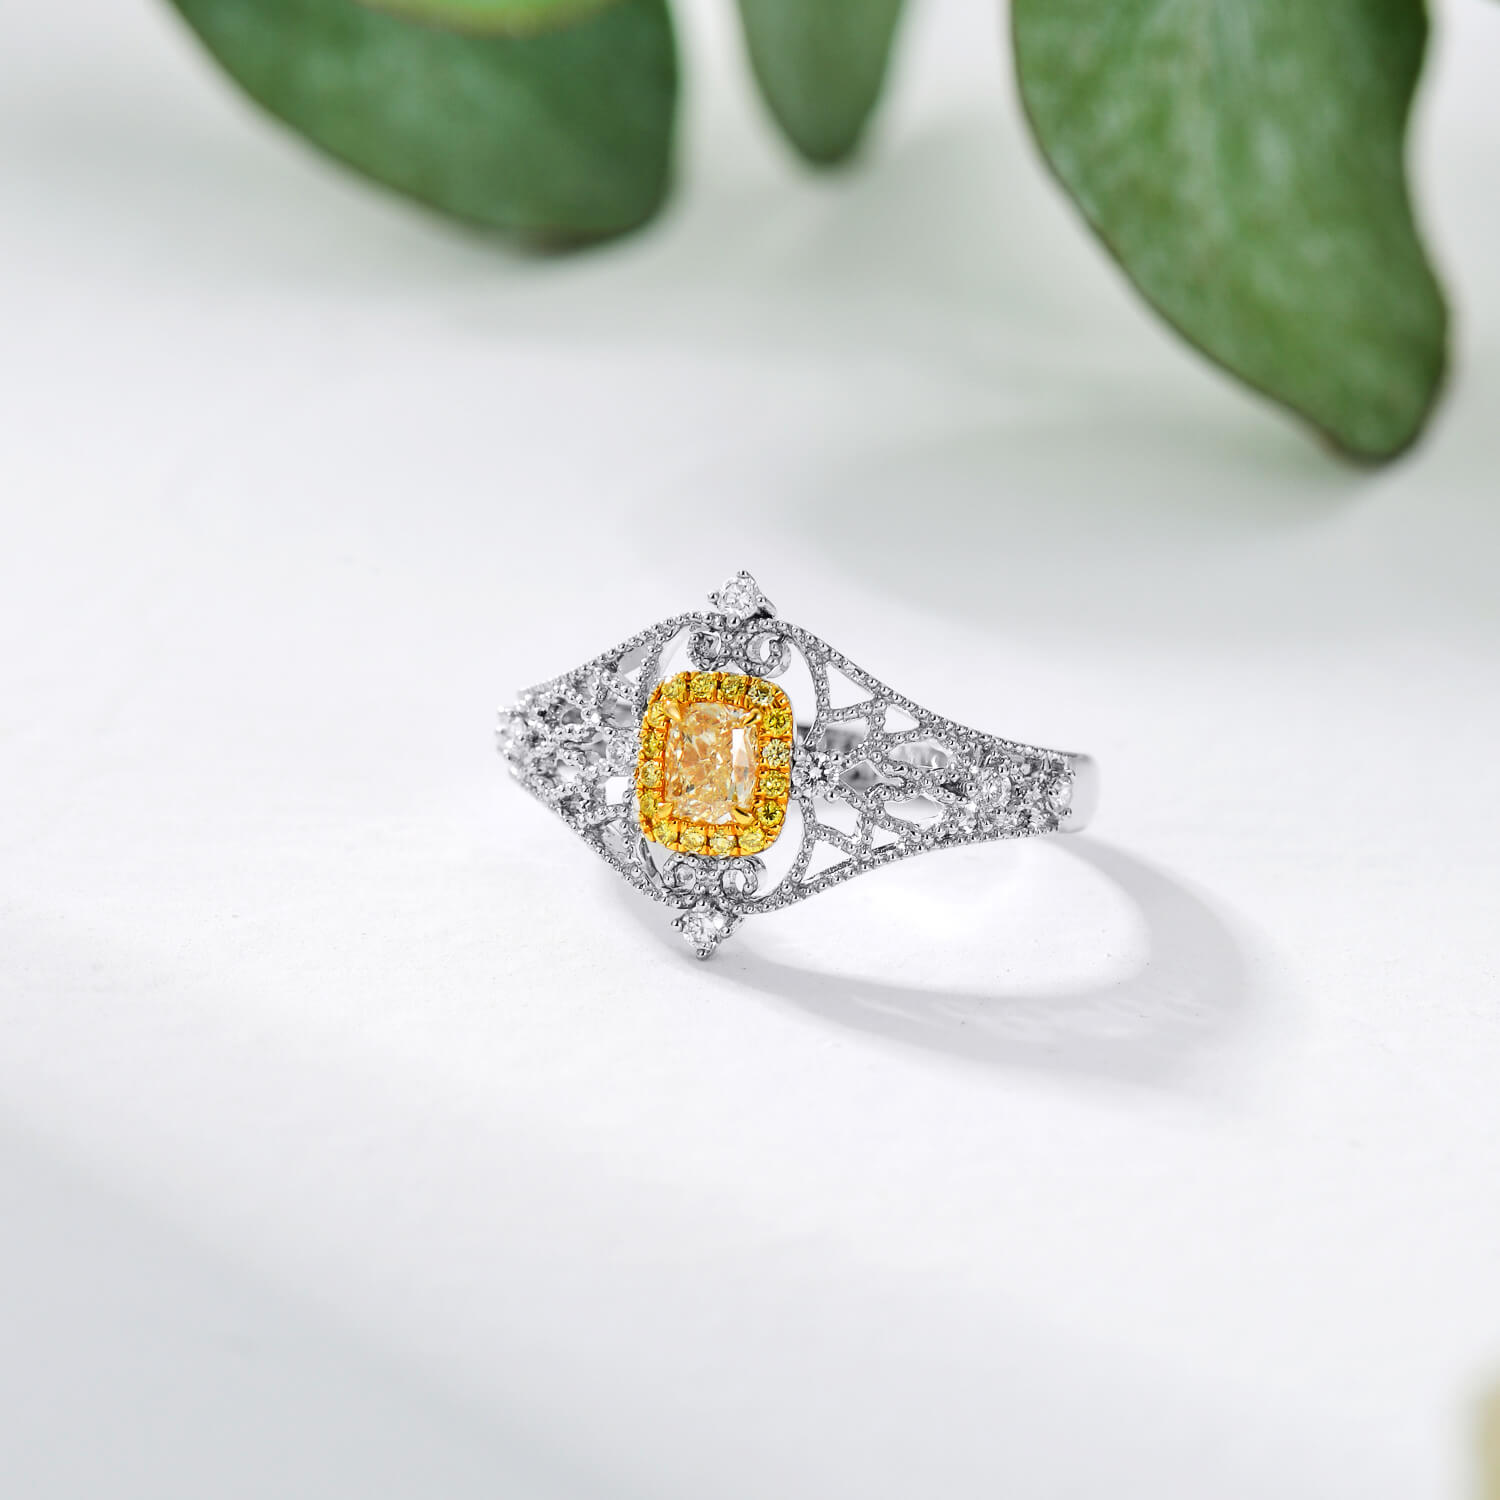 18K Vintage Cushion Yellow Diamond Ring